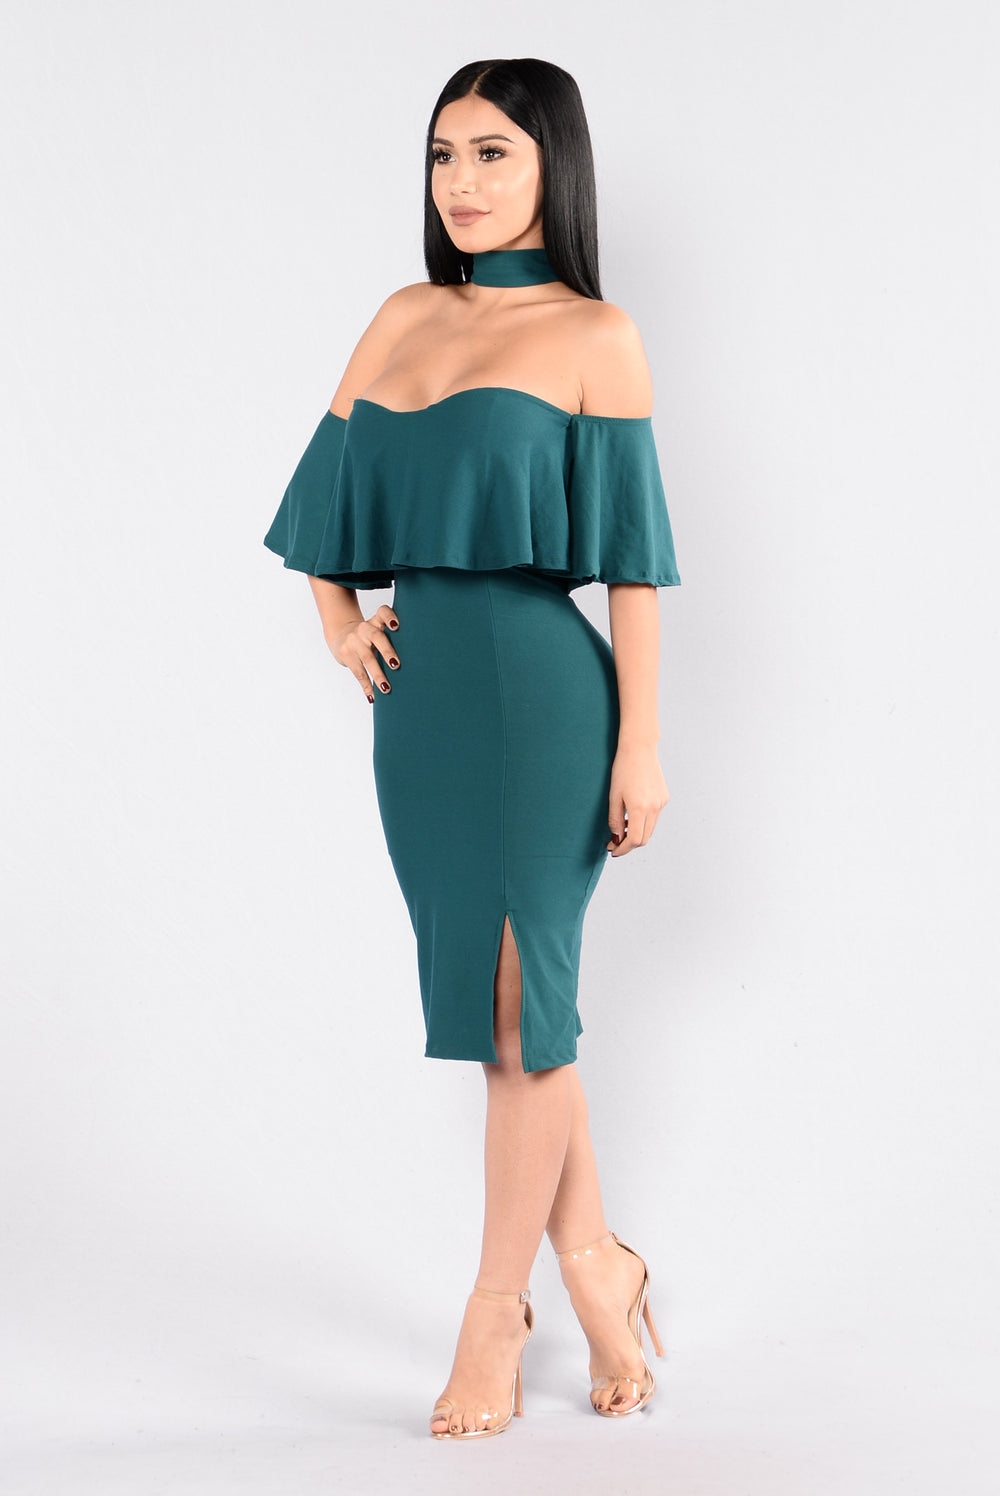 Lost In Love Dress - Jade